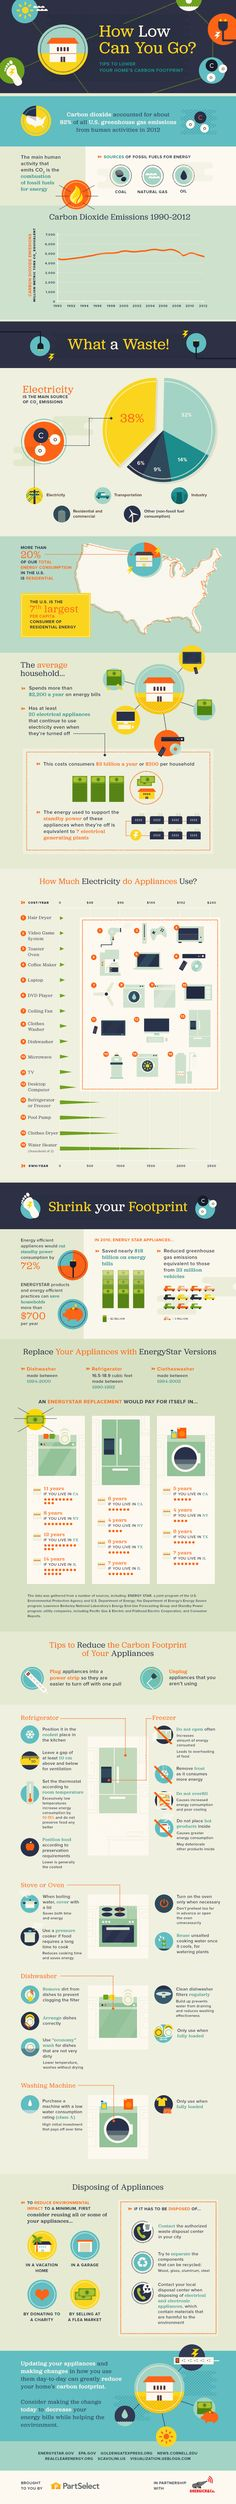 Tips on Lowering Your Home's Carbon Footprint